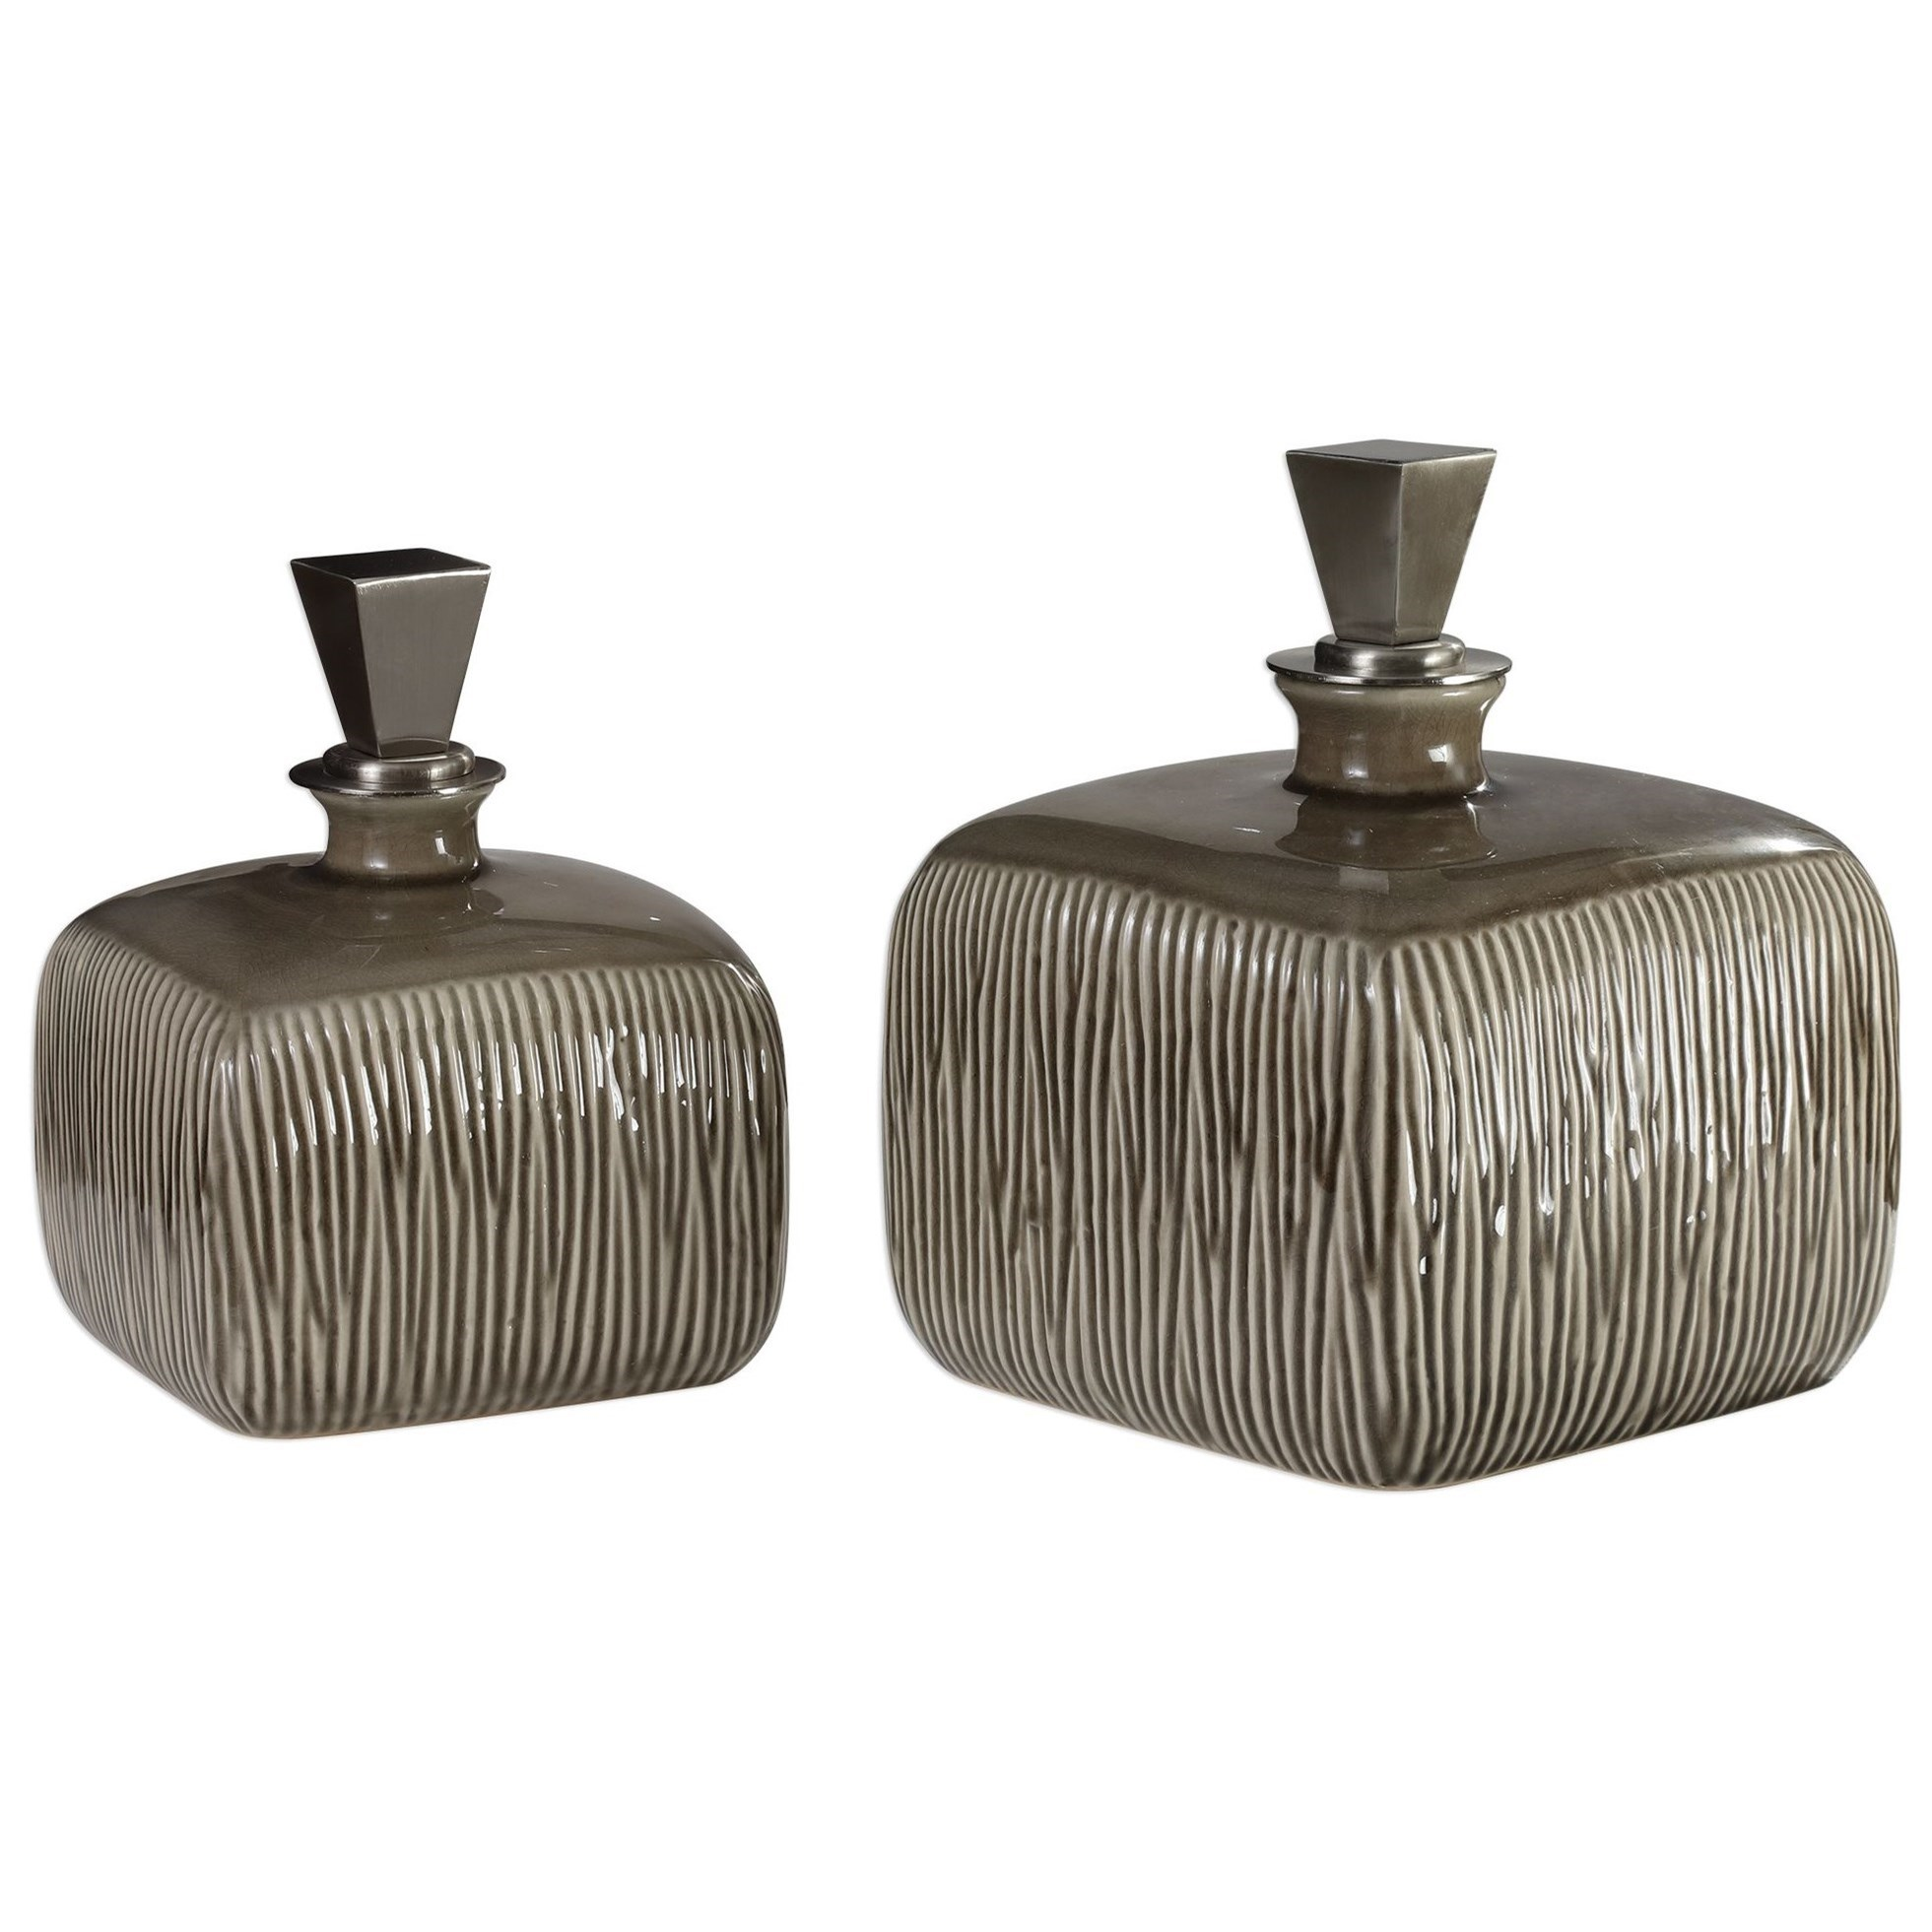 Accessories Cayson Ribbed Ceramic Bottles, S/2 by Uttermost at Upper Room Home Furnishings